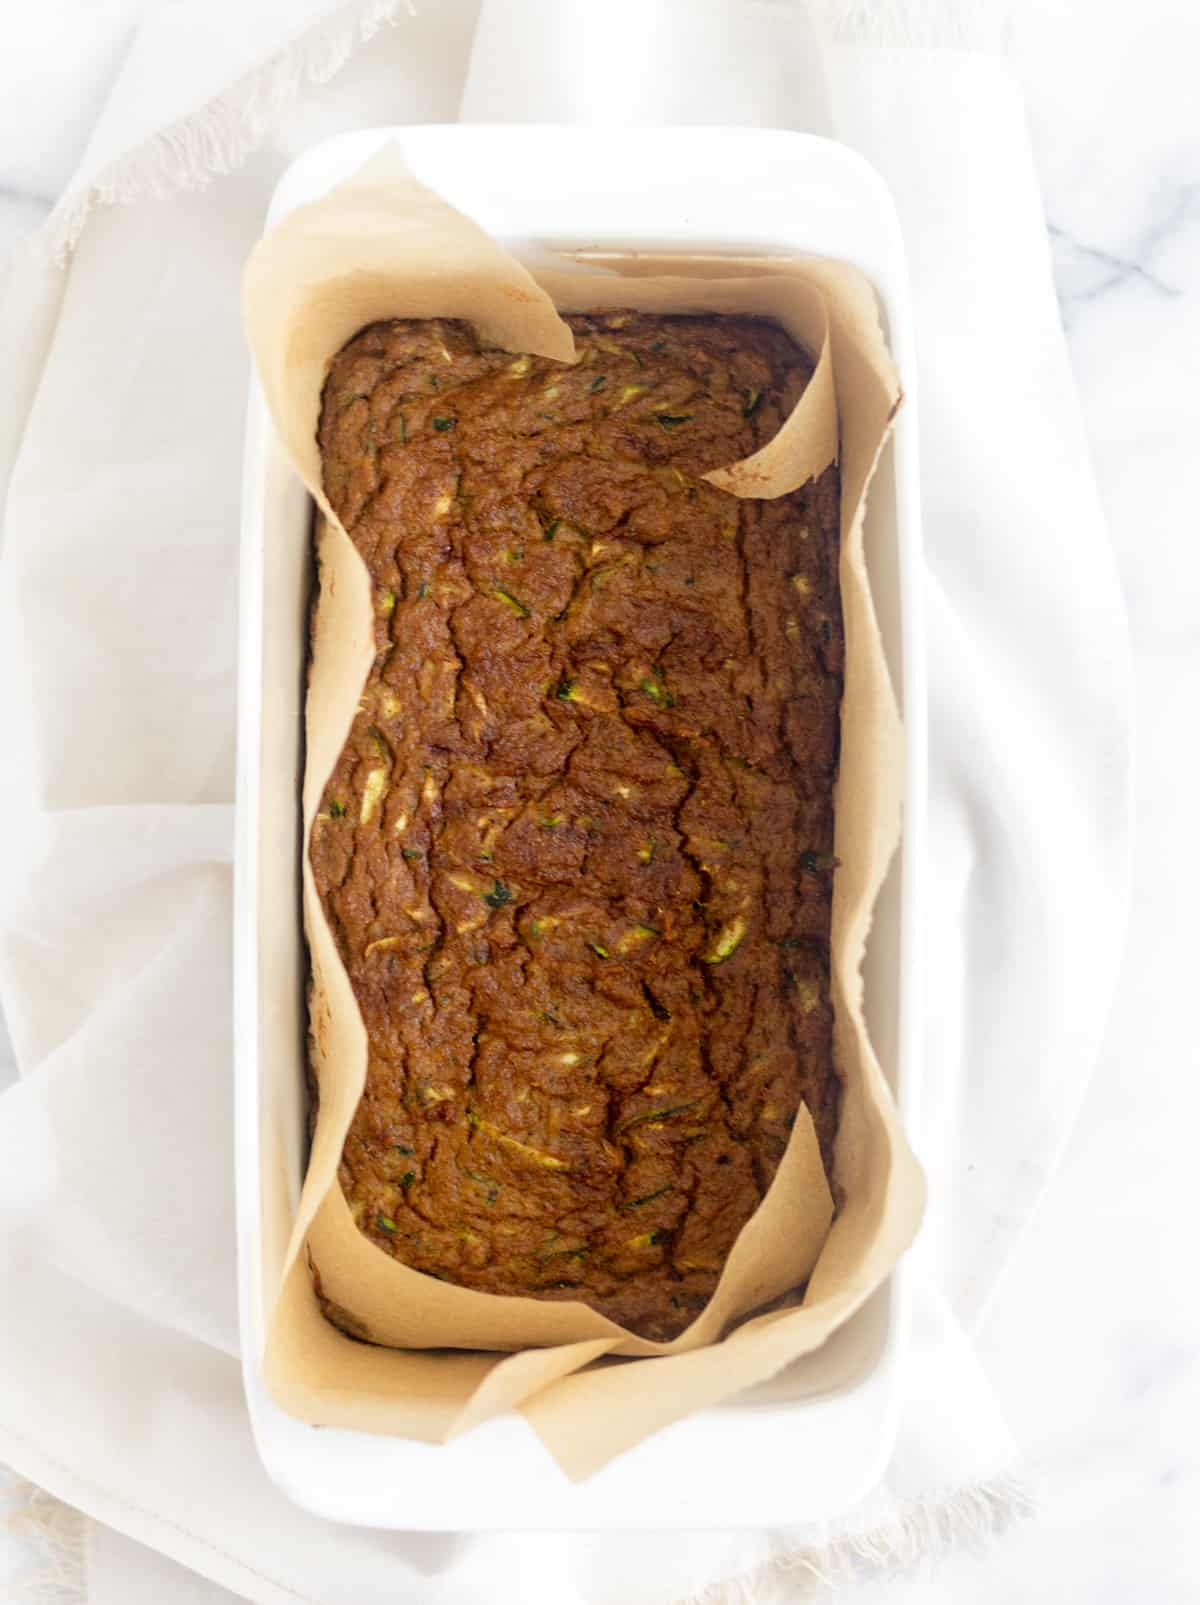 Paleo Zucchini Banana Bread in a glass loaf pan with parchment paper around it on a white marble countertop